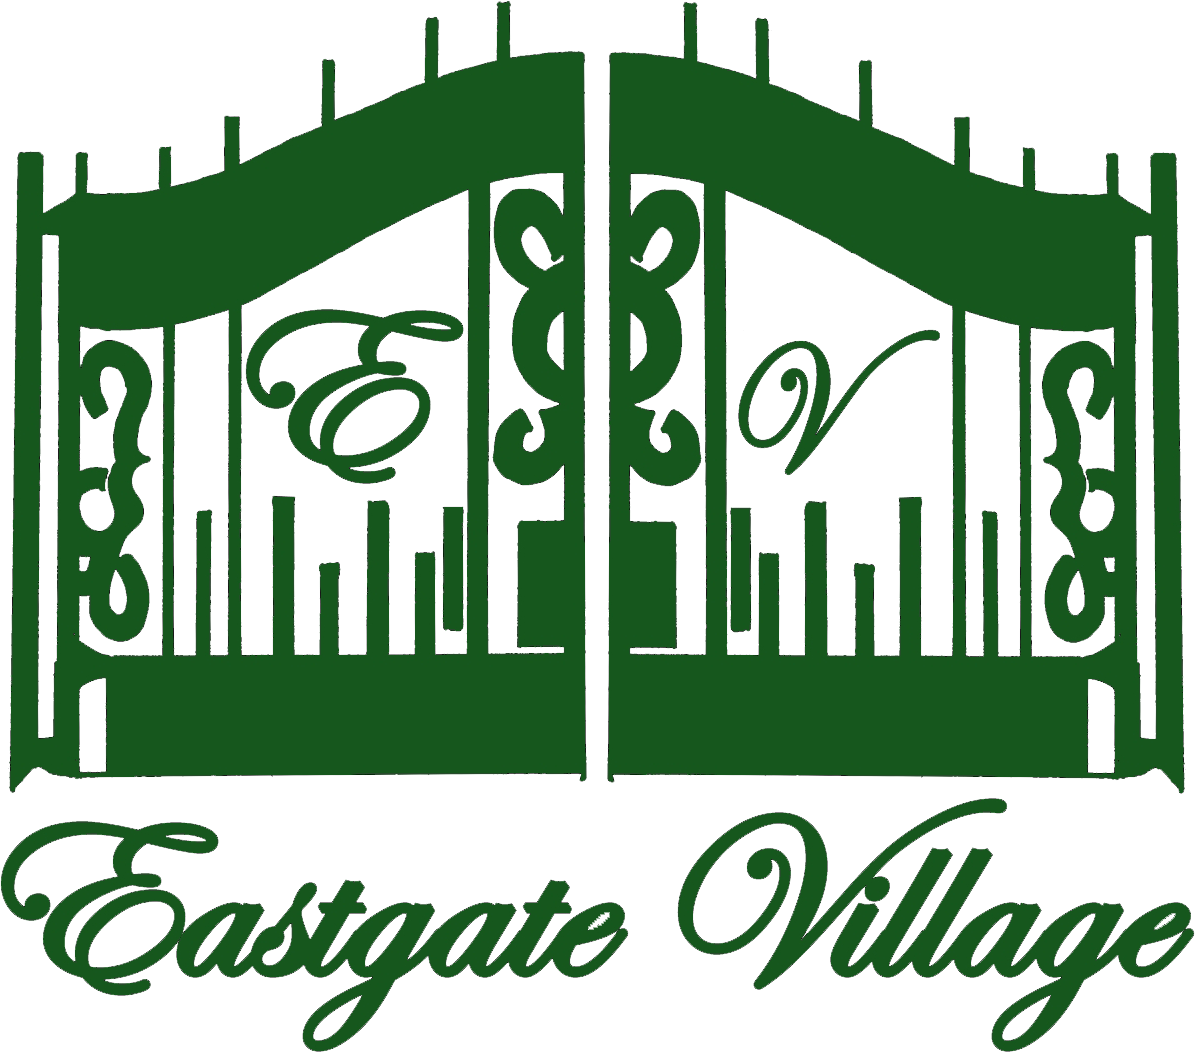 Eastgate Village